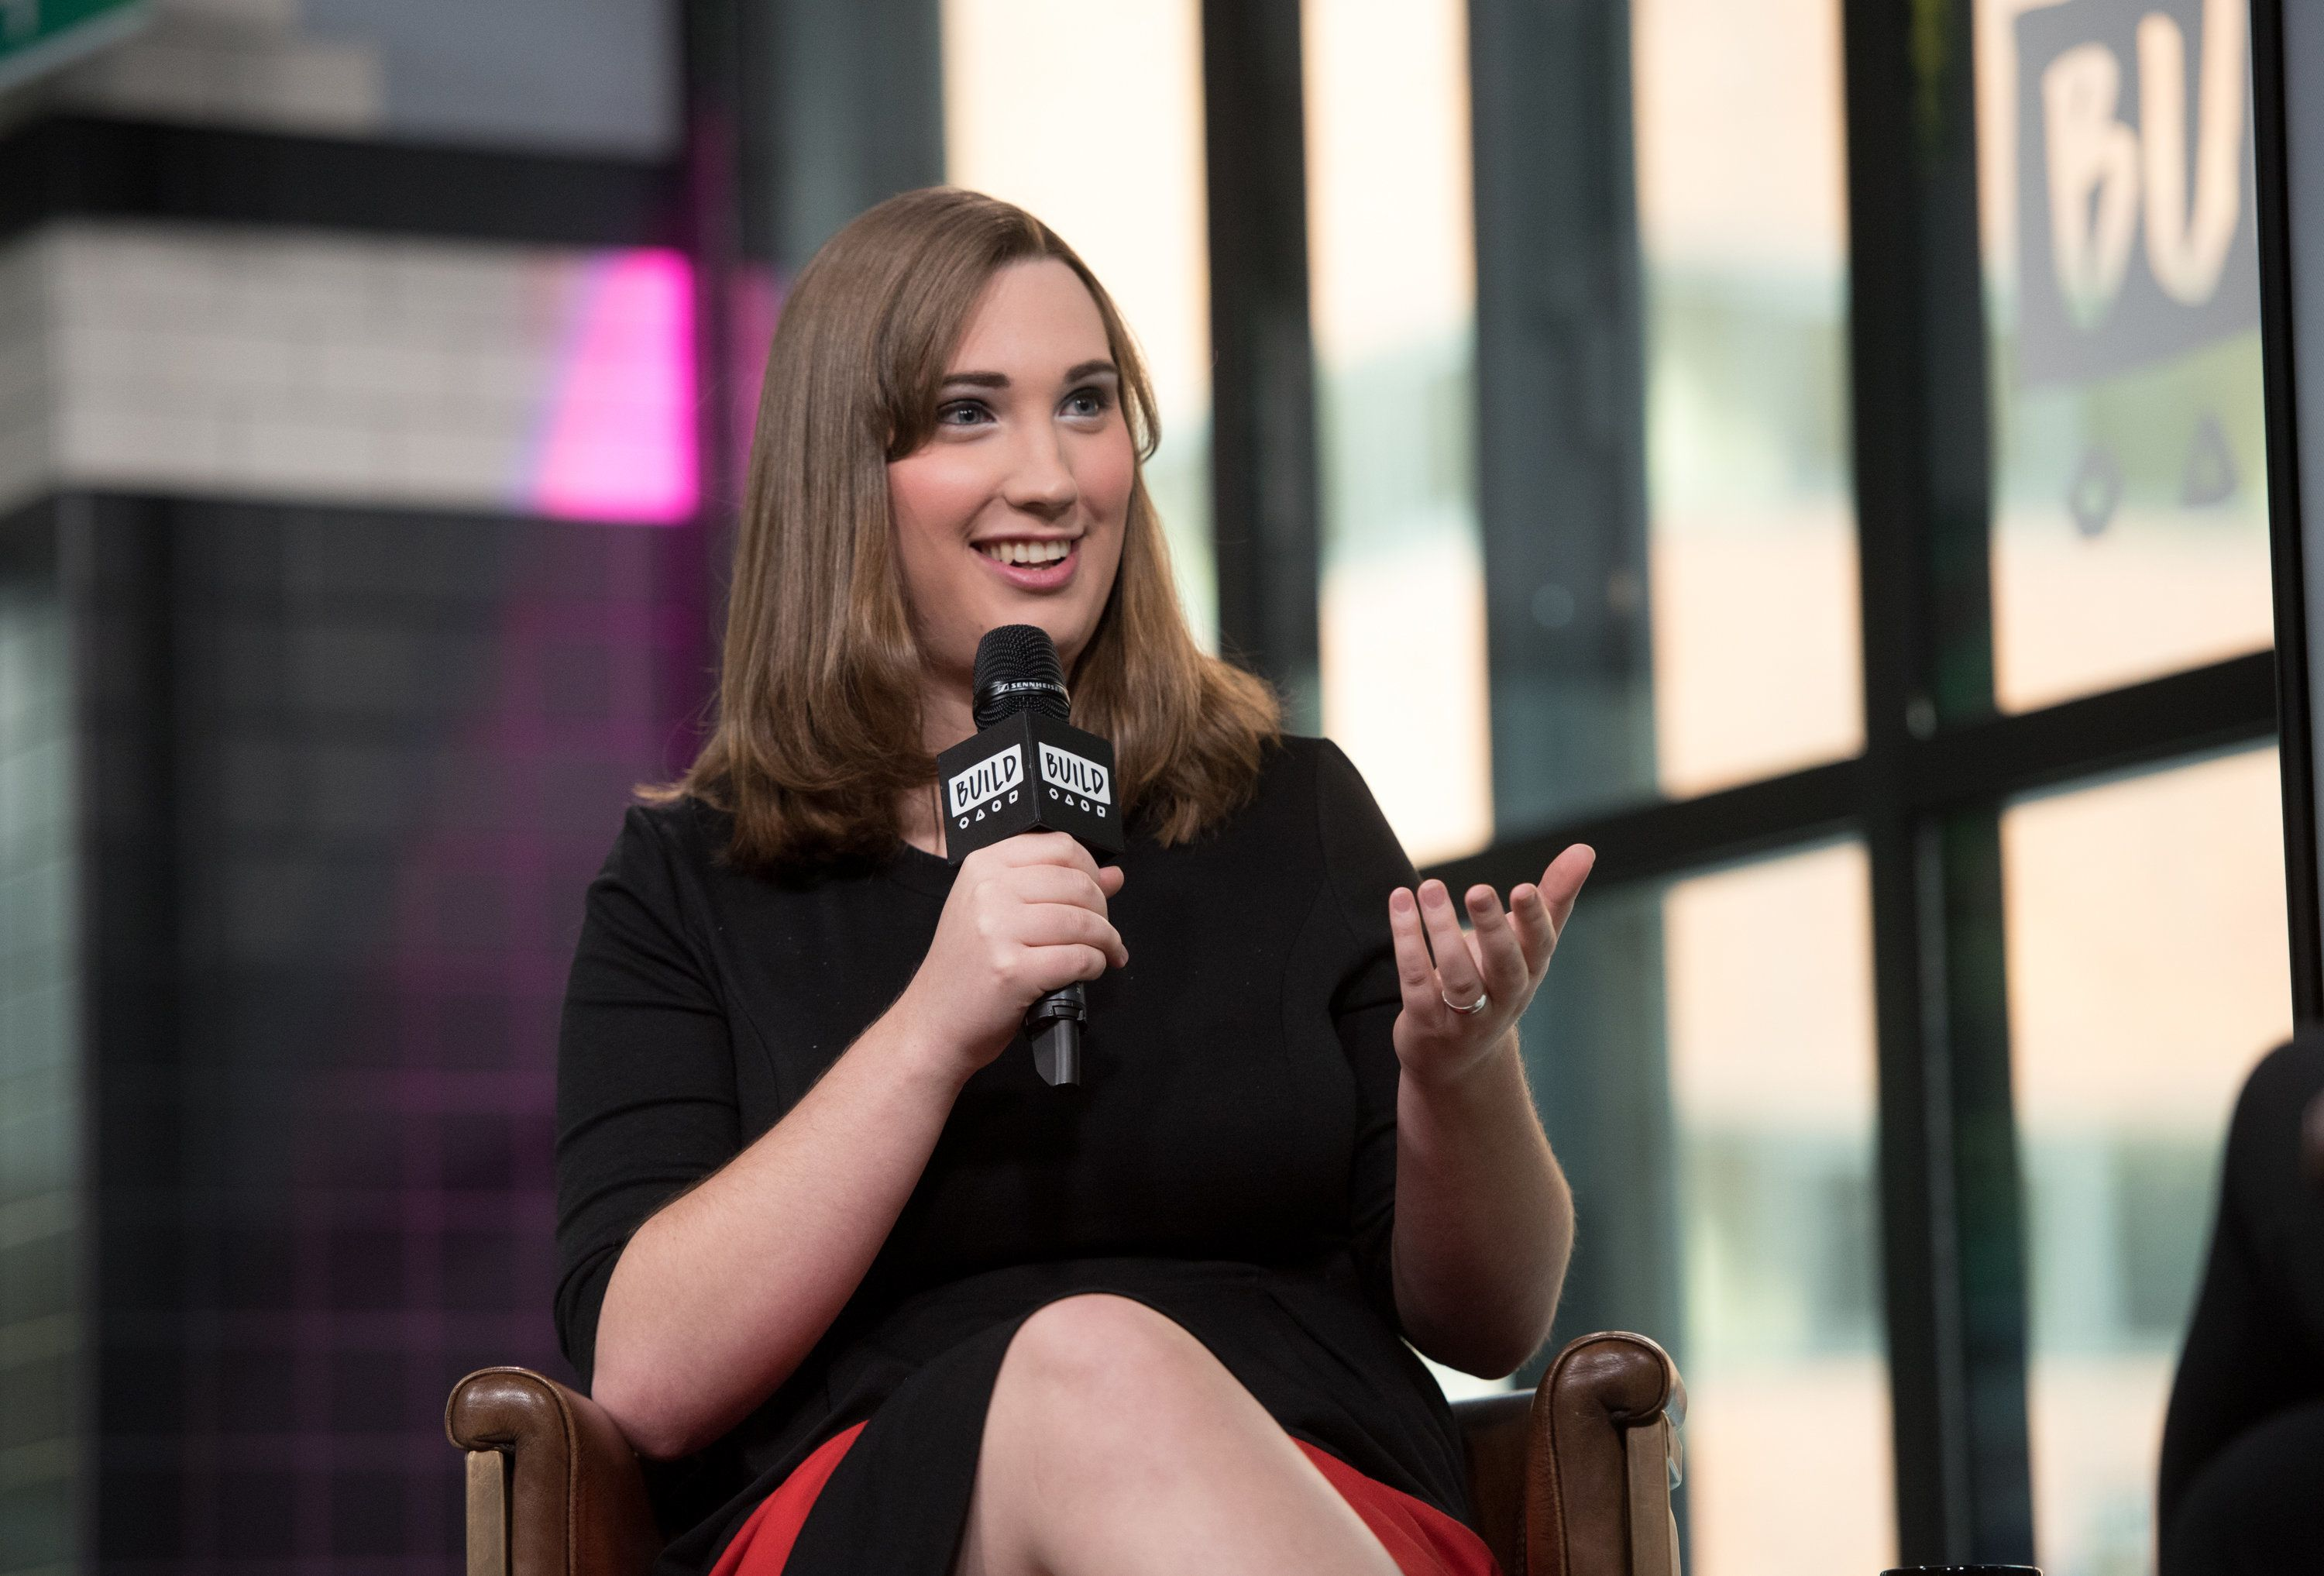 Sarah McBride discusses her new book as part of the Build Series in New York on March 6, 2018.